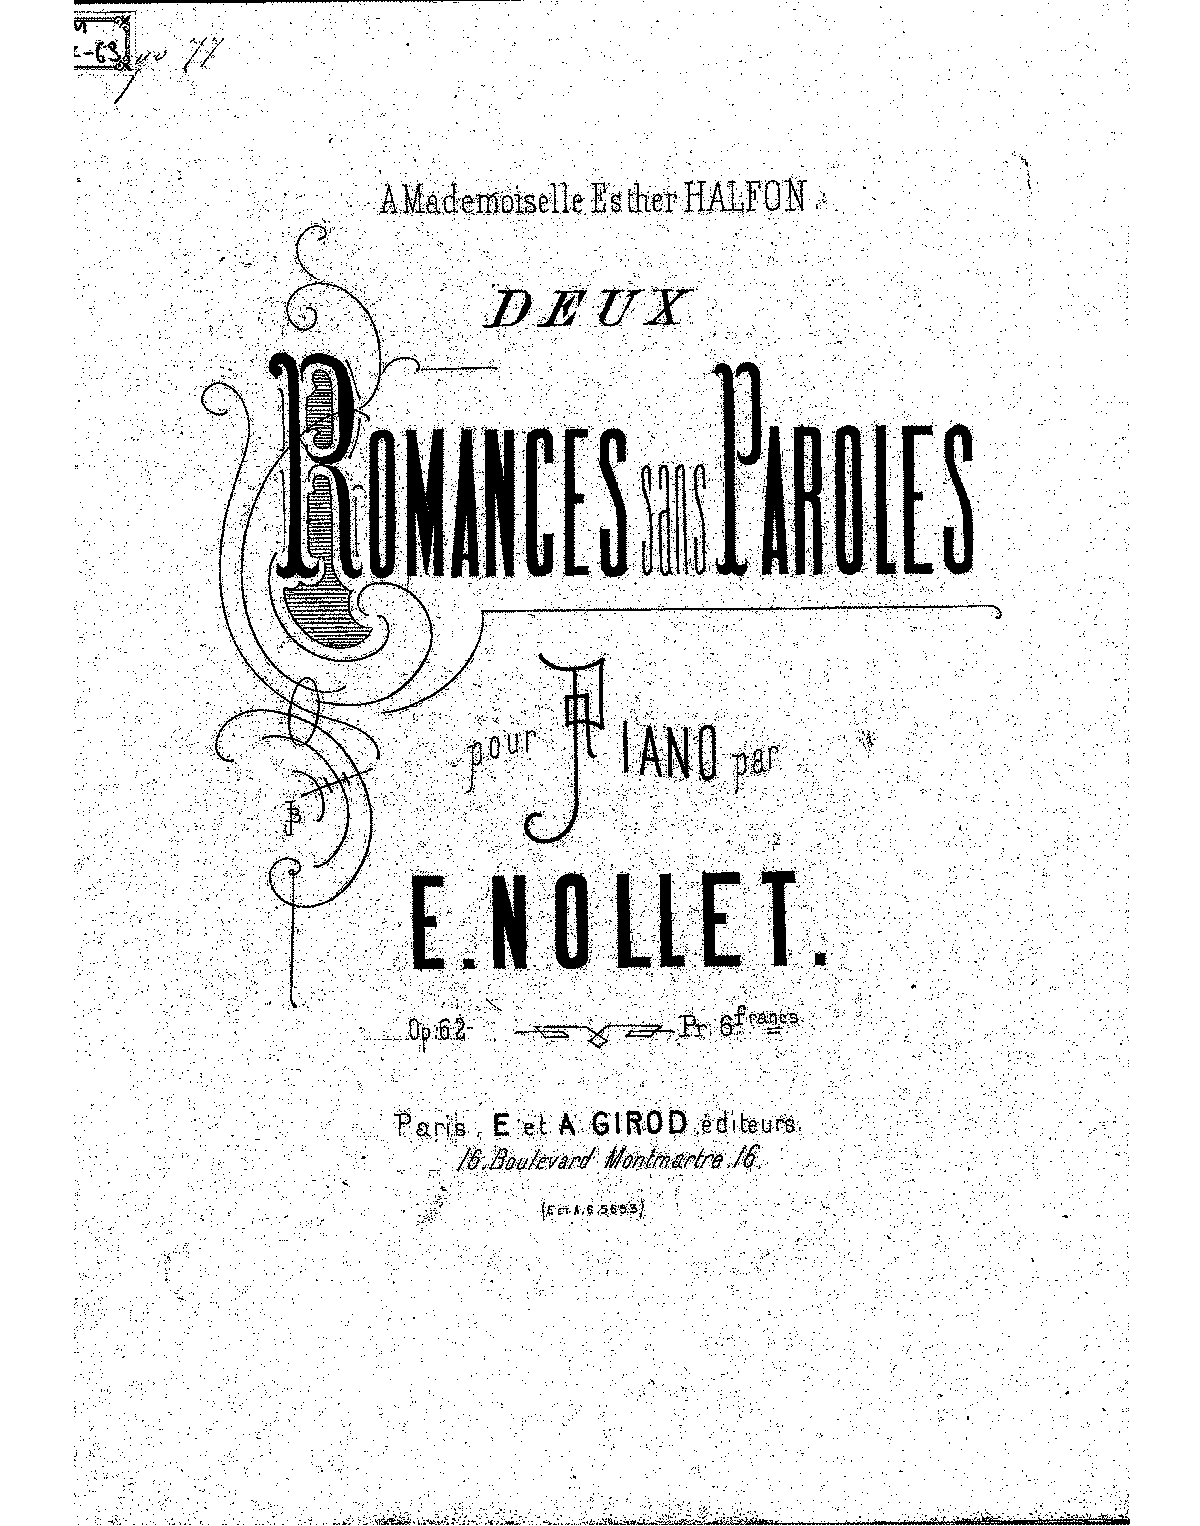 PMLP476365-ENollet 2 Romances sans paroles, Op.62.pdf